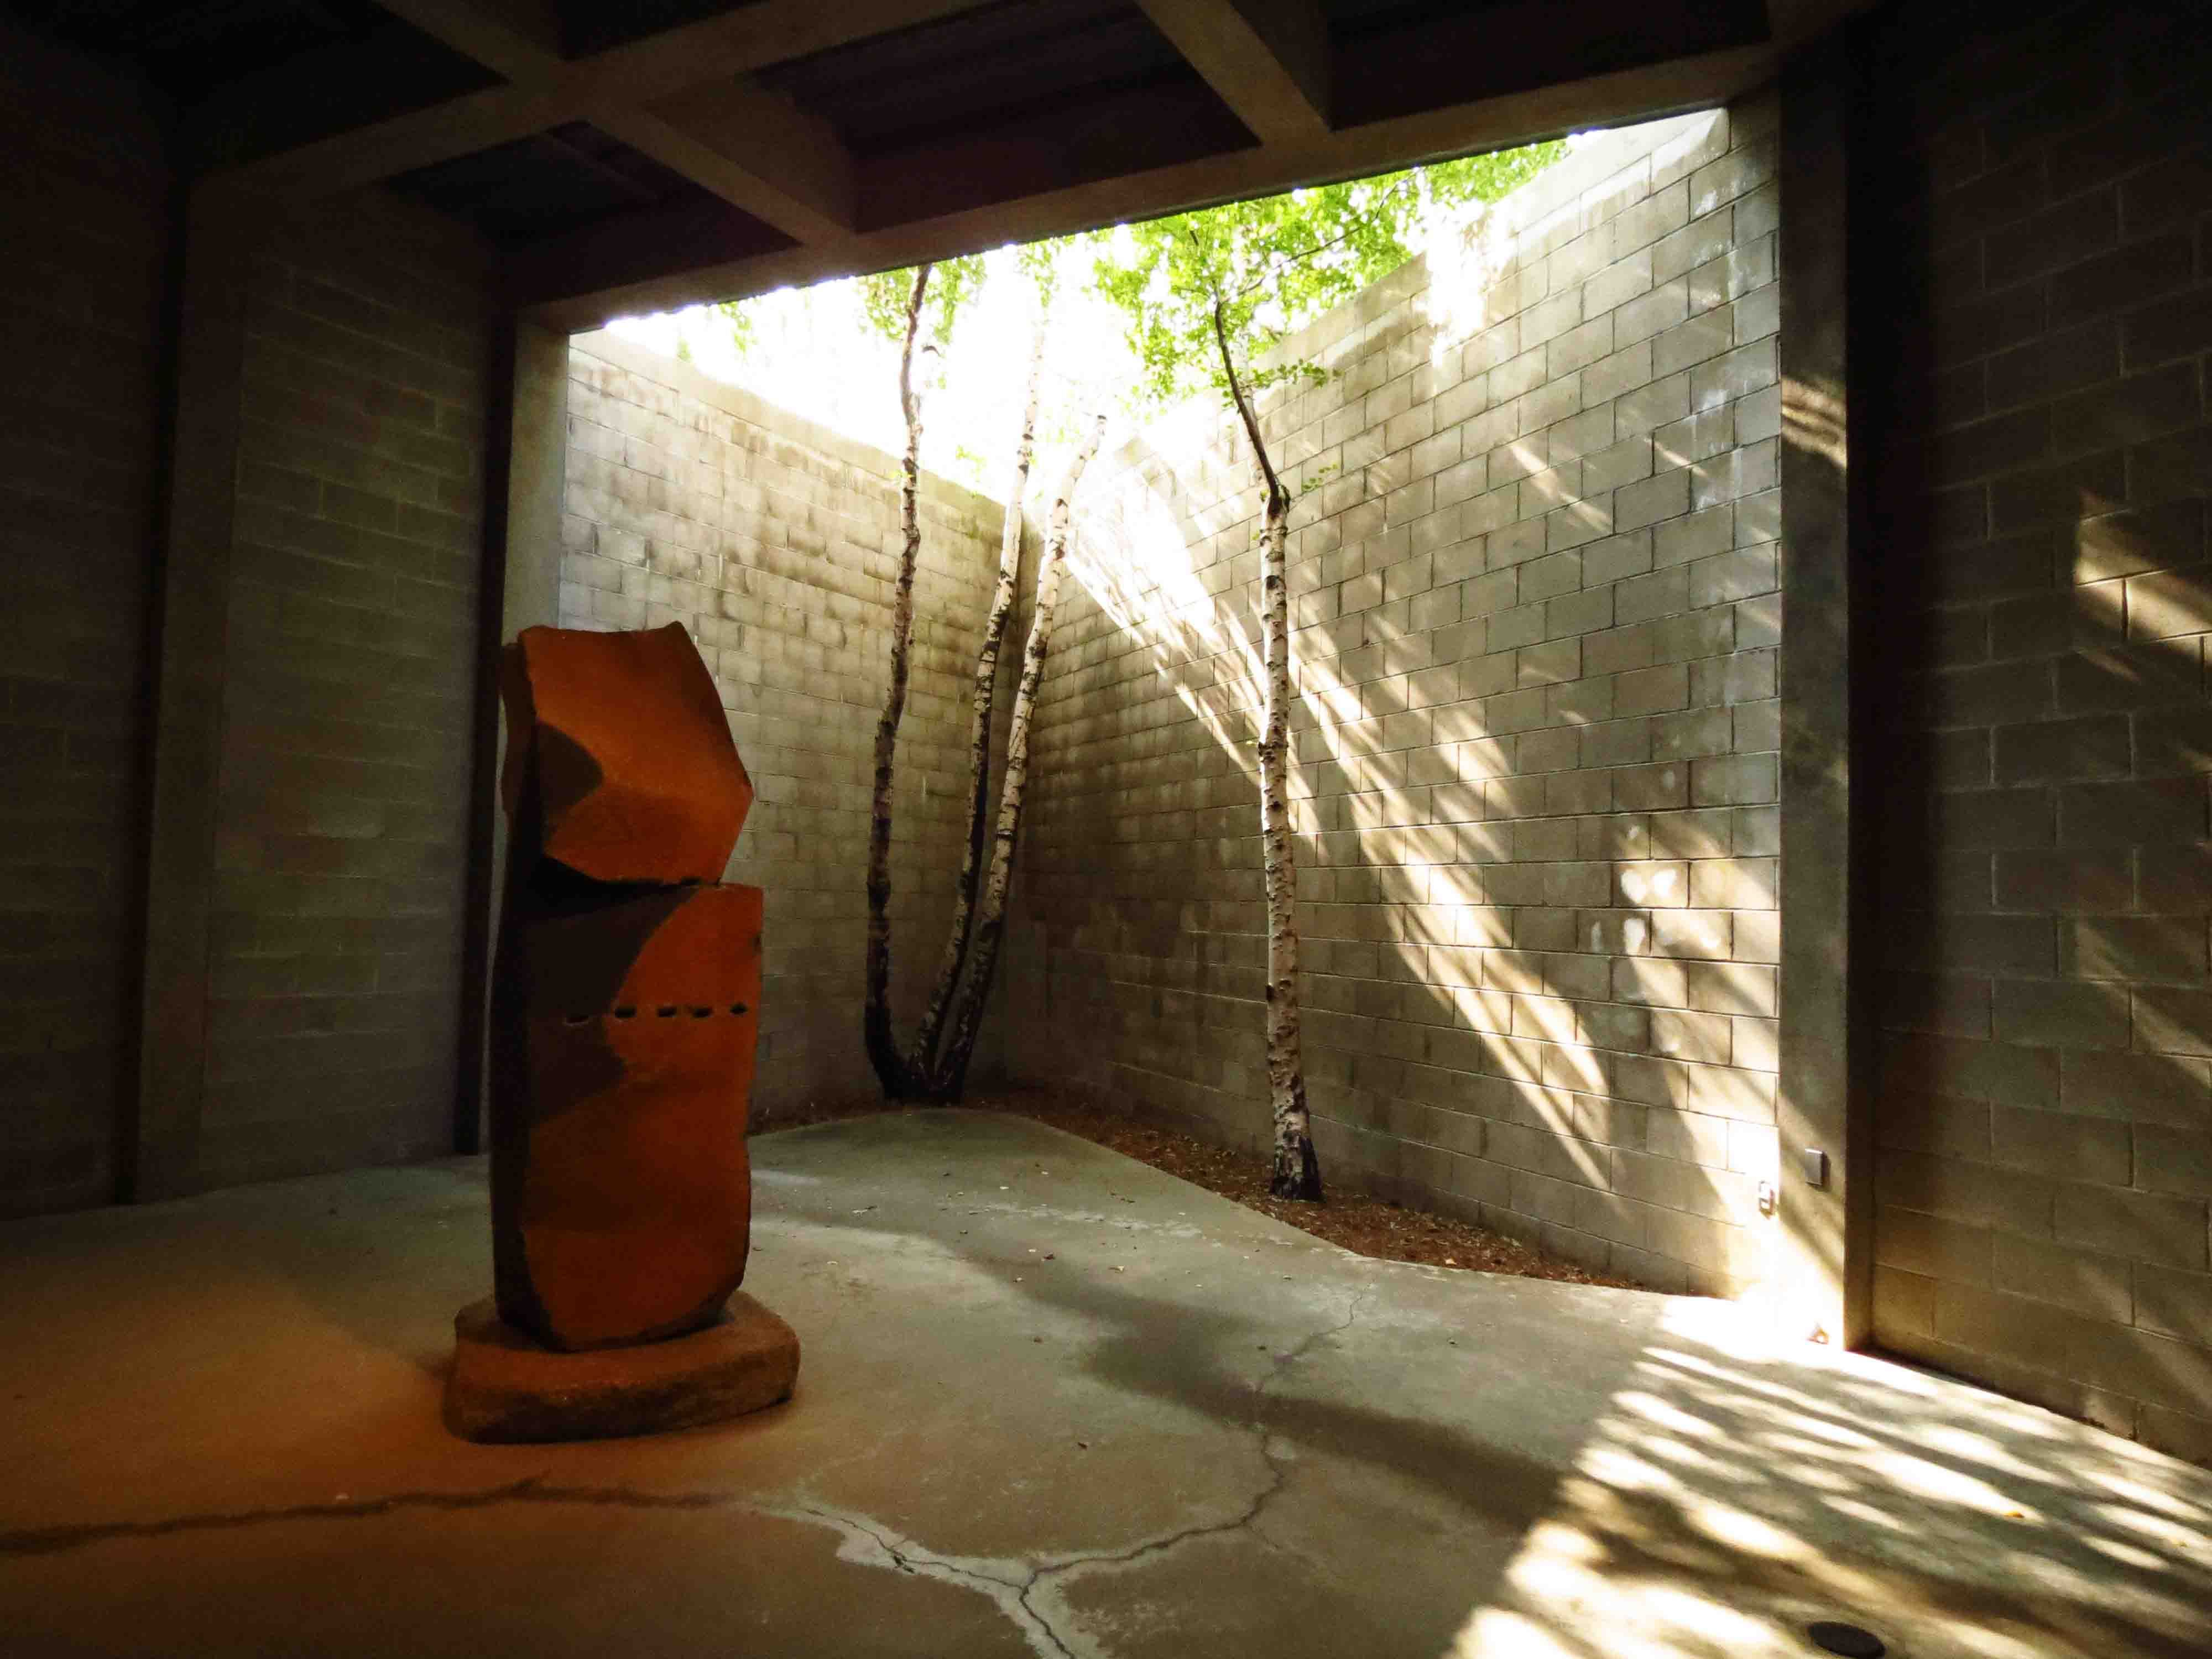 THE NOGUCHI MUSEUM the Noguchi Museum opened in 1985 as the first ...